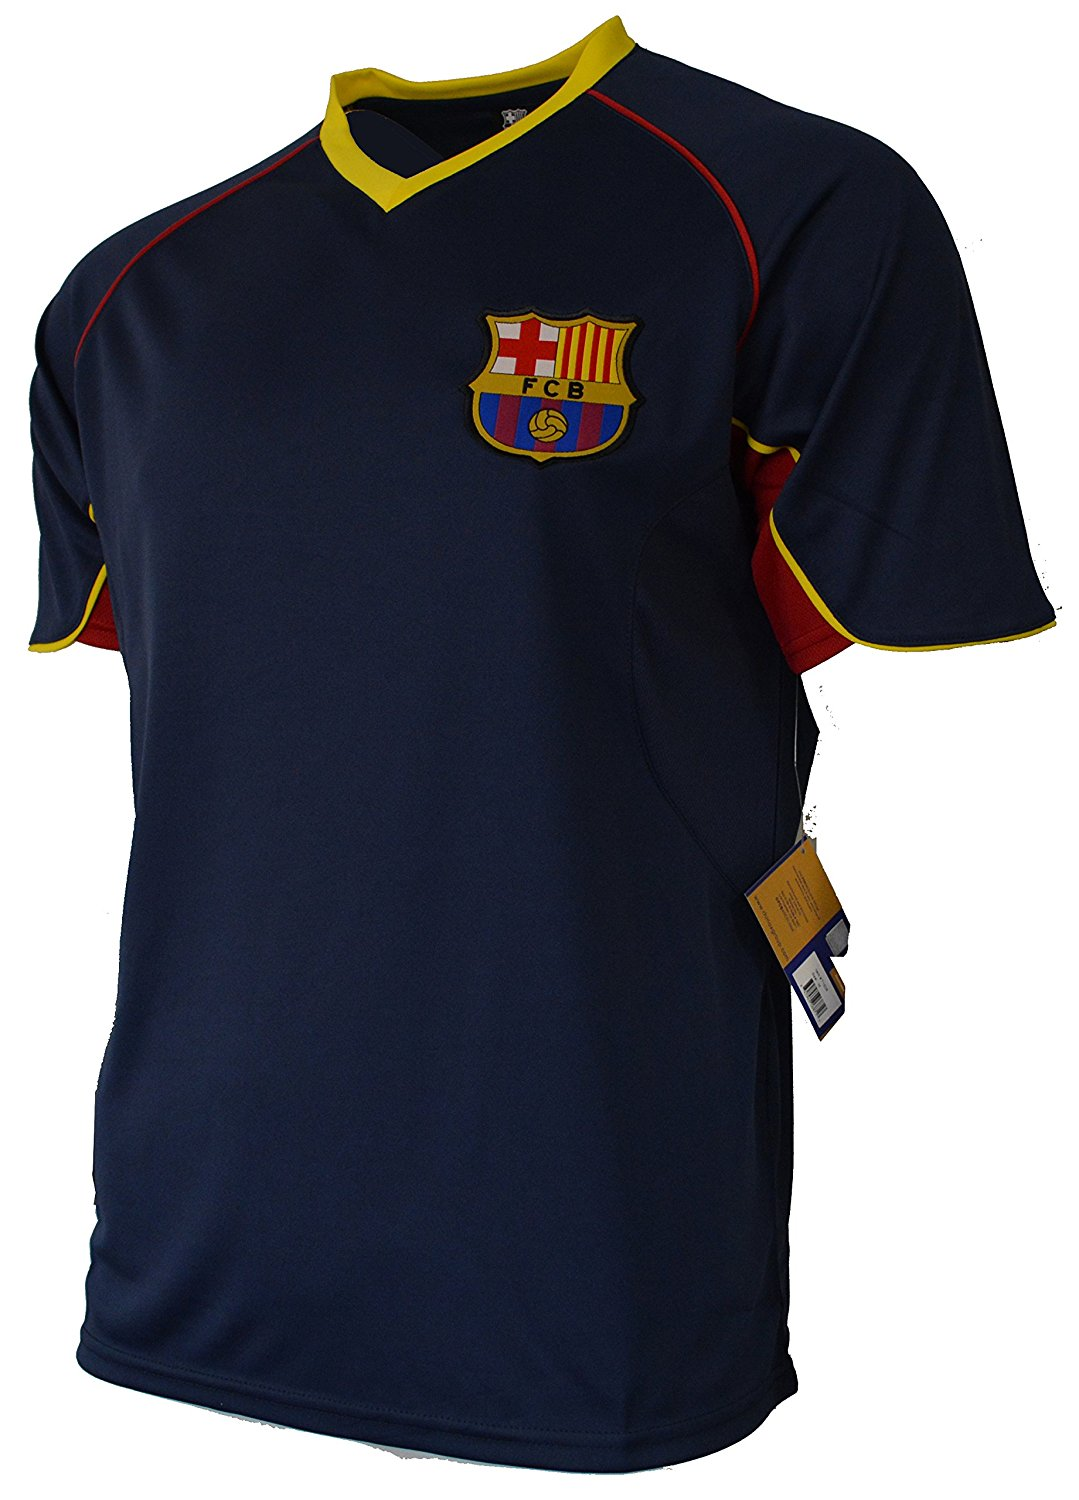 c2c1b71bc5c Get Quotations · Fc Barcelona Adult Training Jersey Performance Polyester  -Shirts - Home -Away